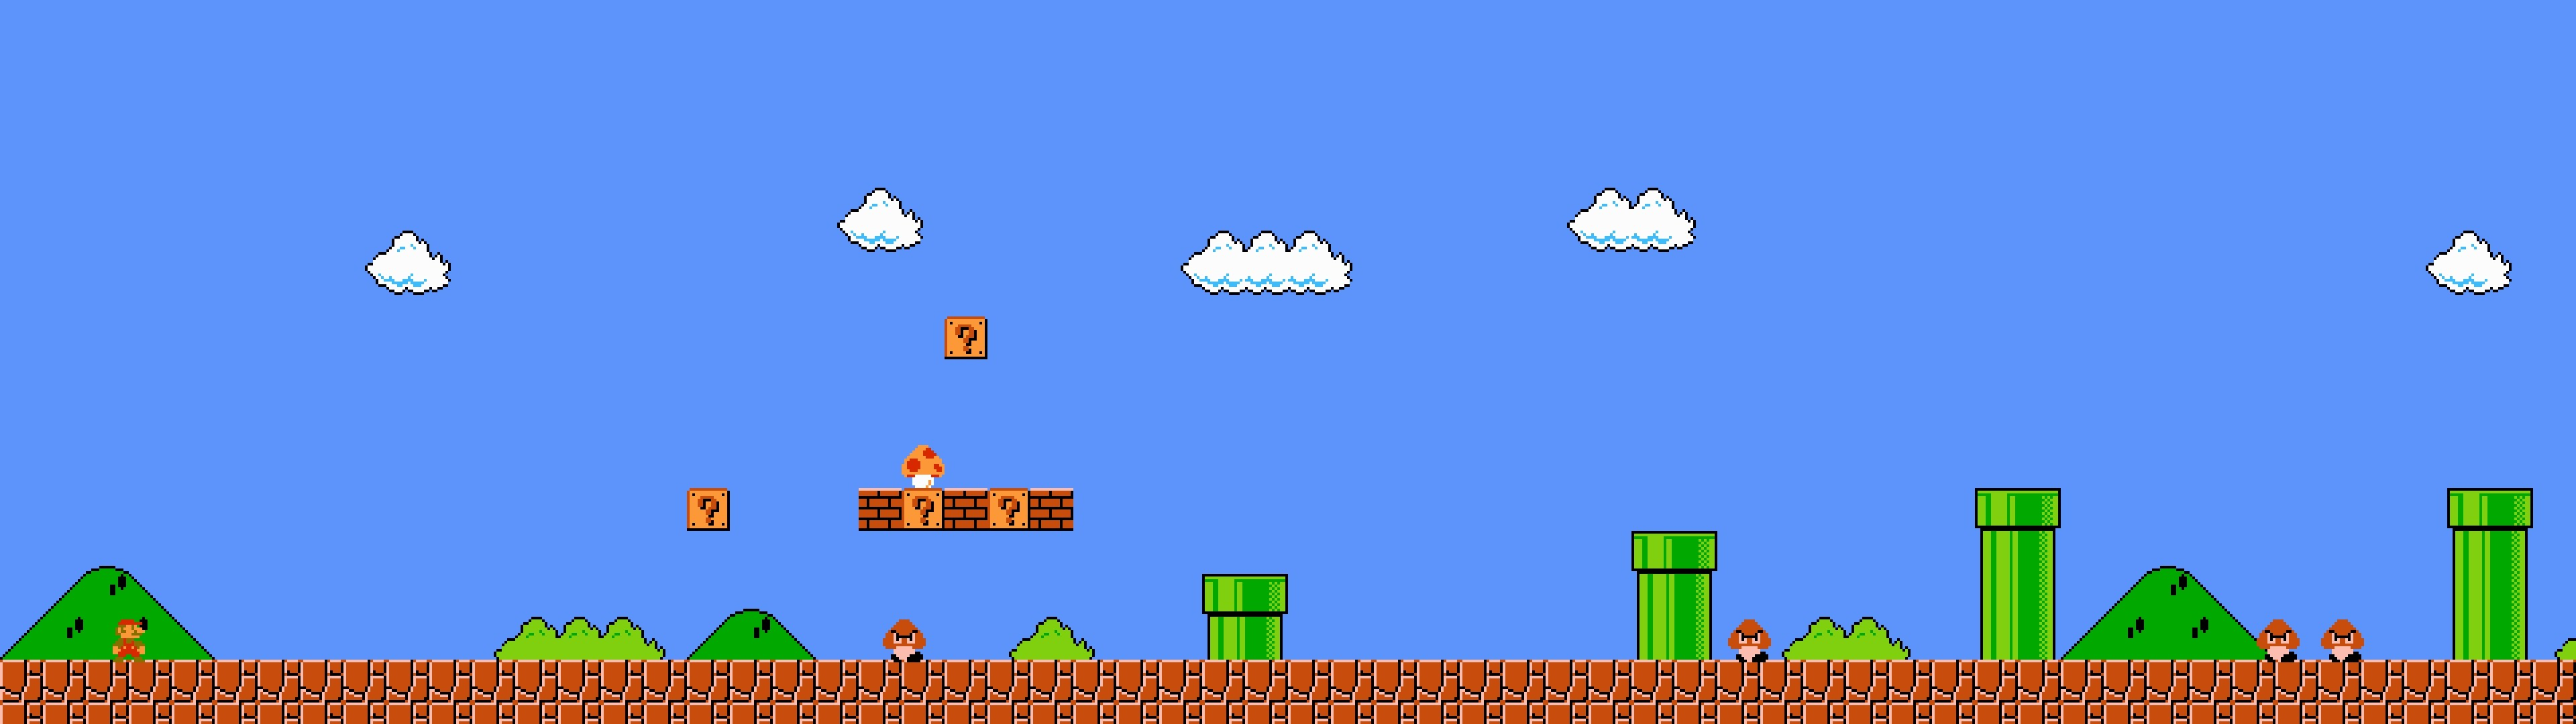 Dual-screen wallpapers, assorted retro games